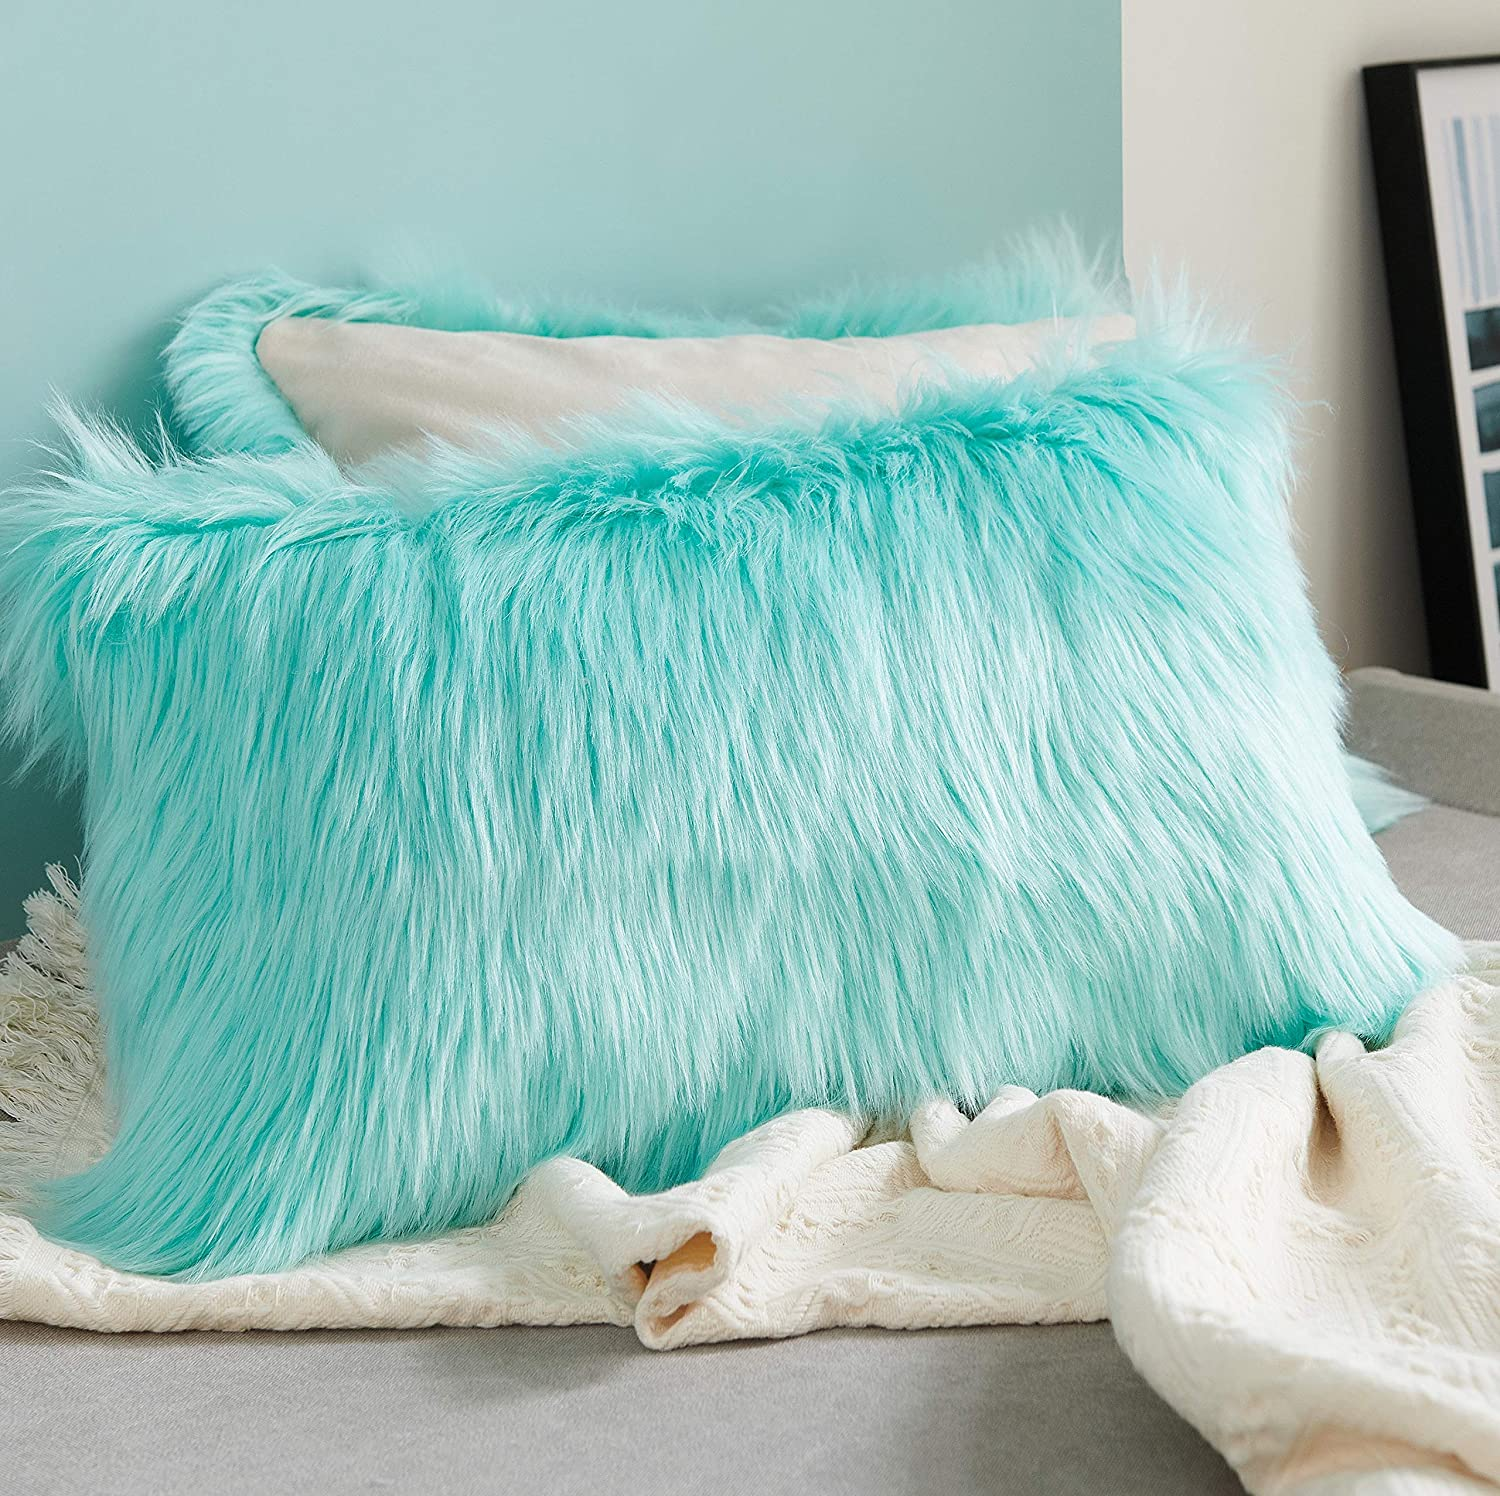 Foindtower Lumbar Fluffy Faux Fur Square Decorative Throw Pillow Cover Plush Soft Cushion Cover Pillowcases for Livingroom Couch Sofa Nursery Bed Home Decor 12x20 Inch (30x50cm) Light Green 1 Piece